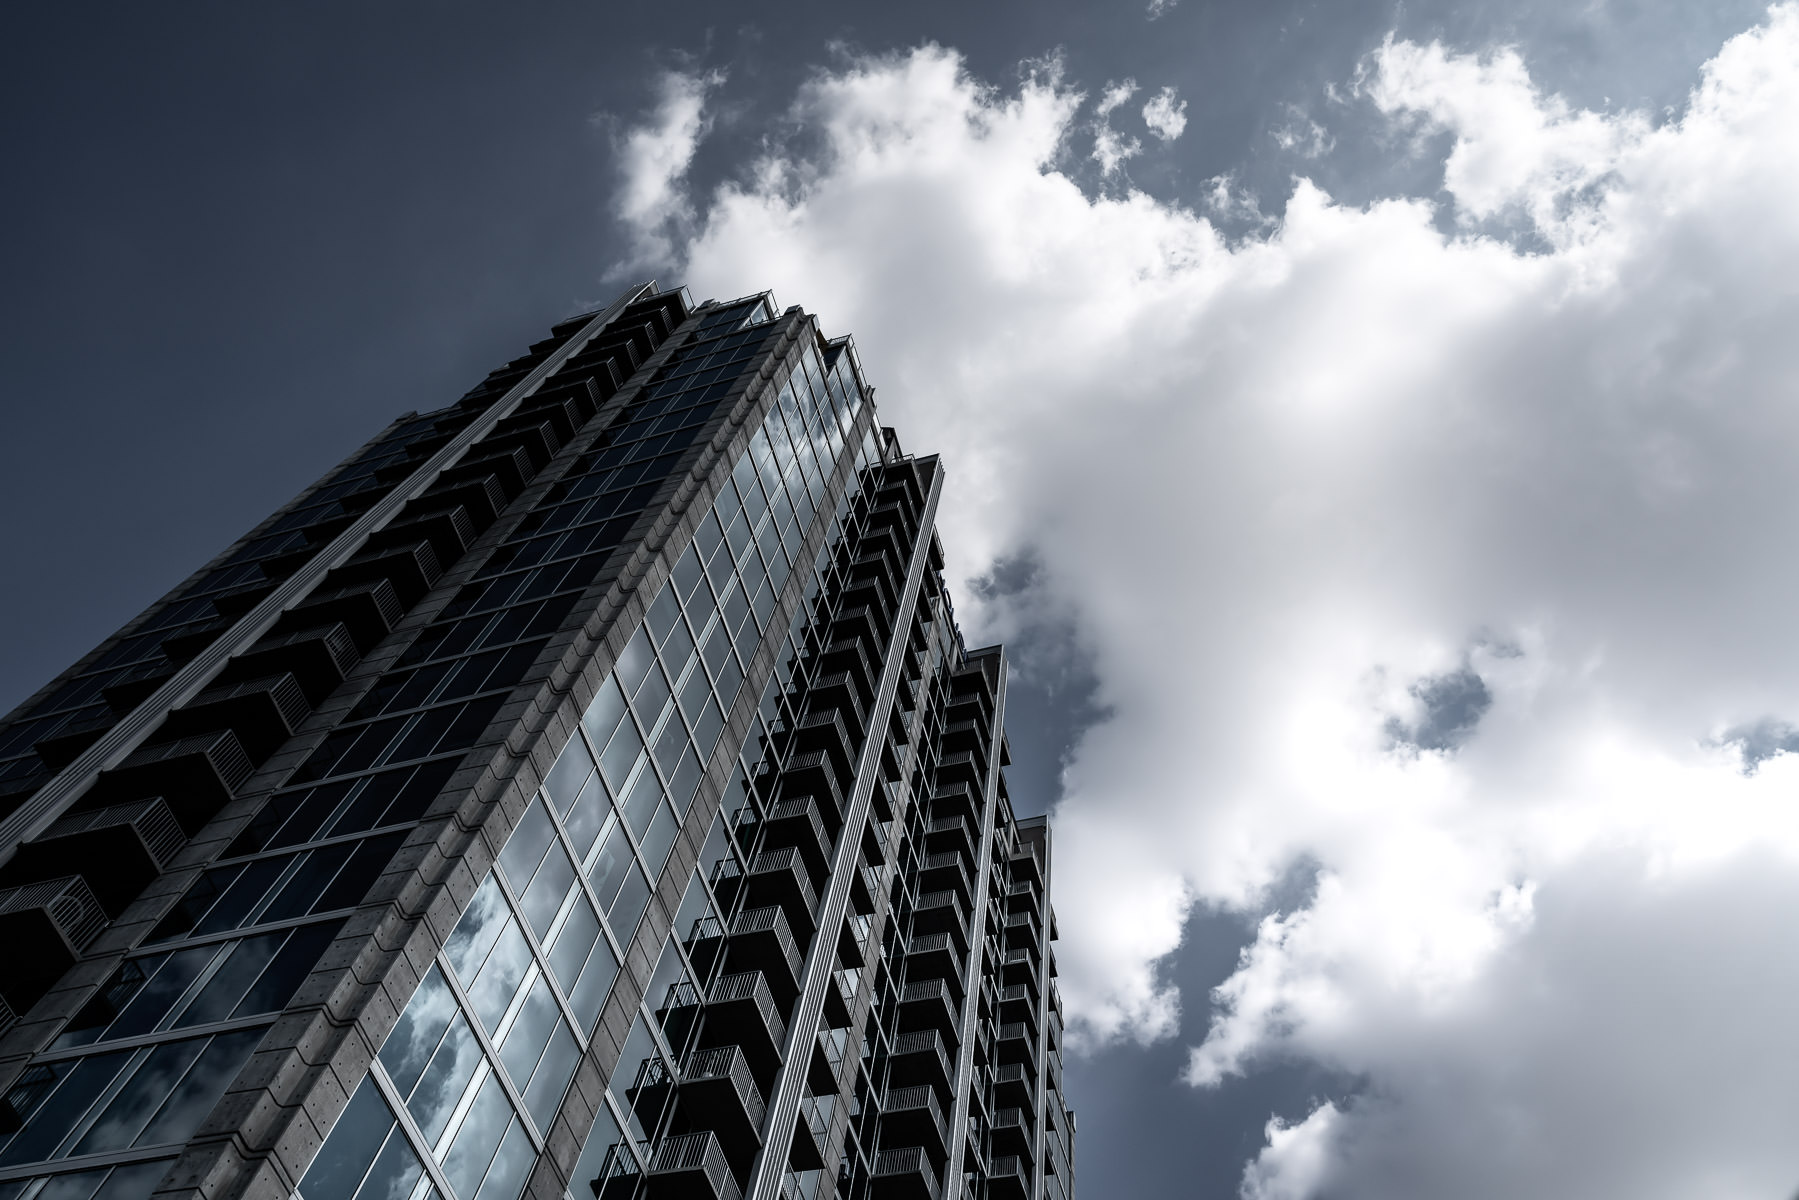 Skyhouse Dallas reaches to the clouds over North Texas.